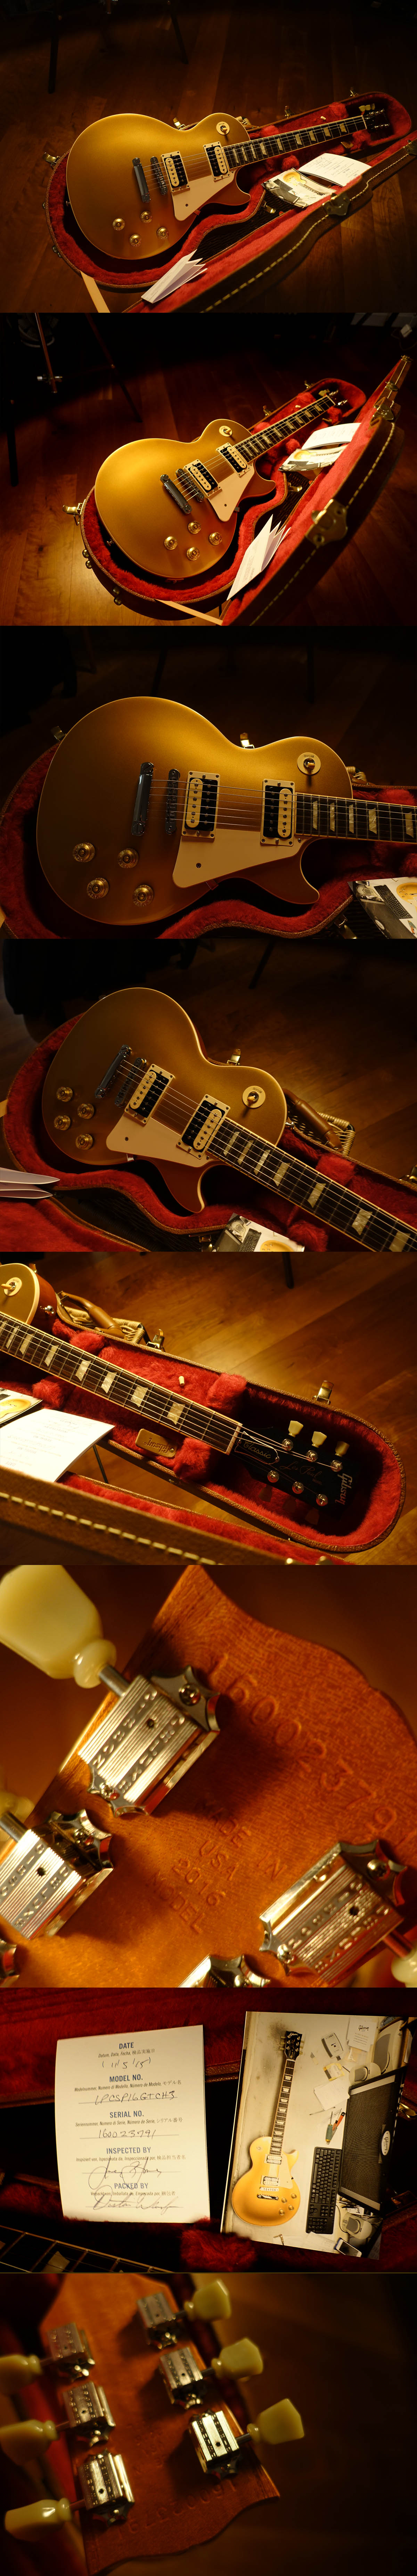 Gibson les paul classic dating 100 kostenlose Dating-Website in england